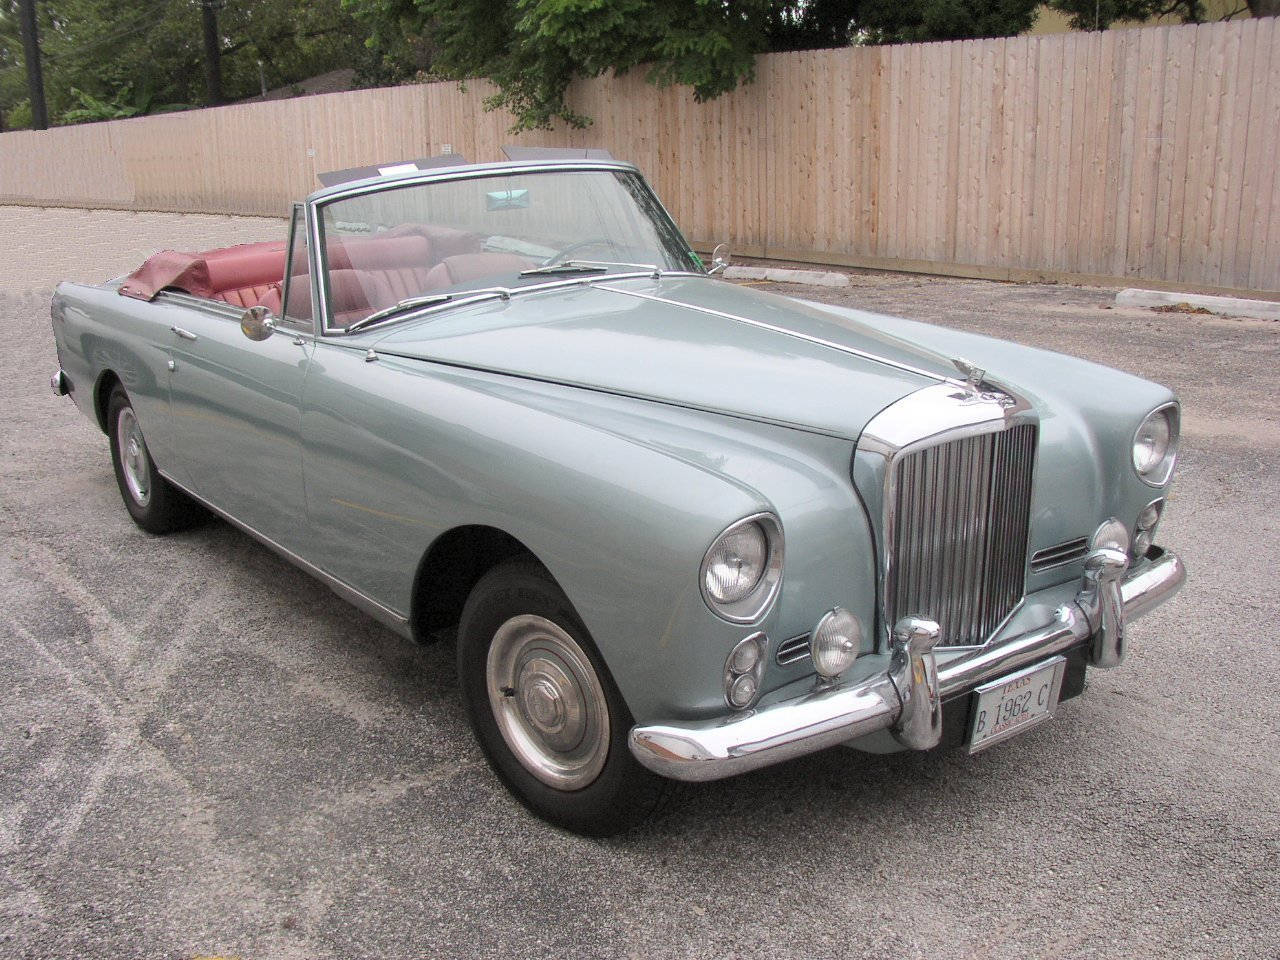 Bentley S2 Drophead Coupe (1959-1962)